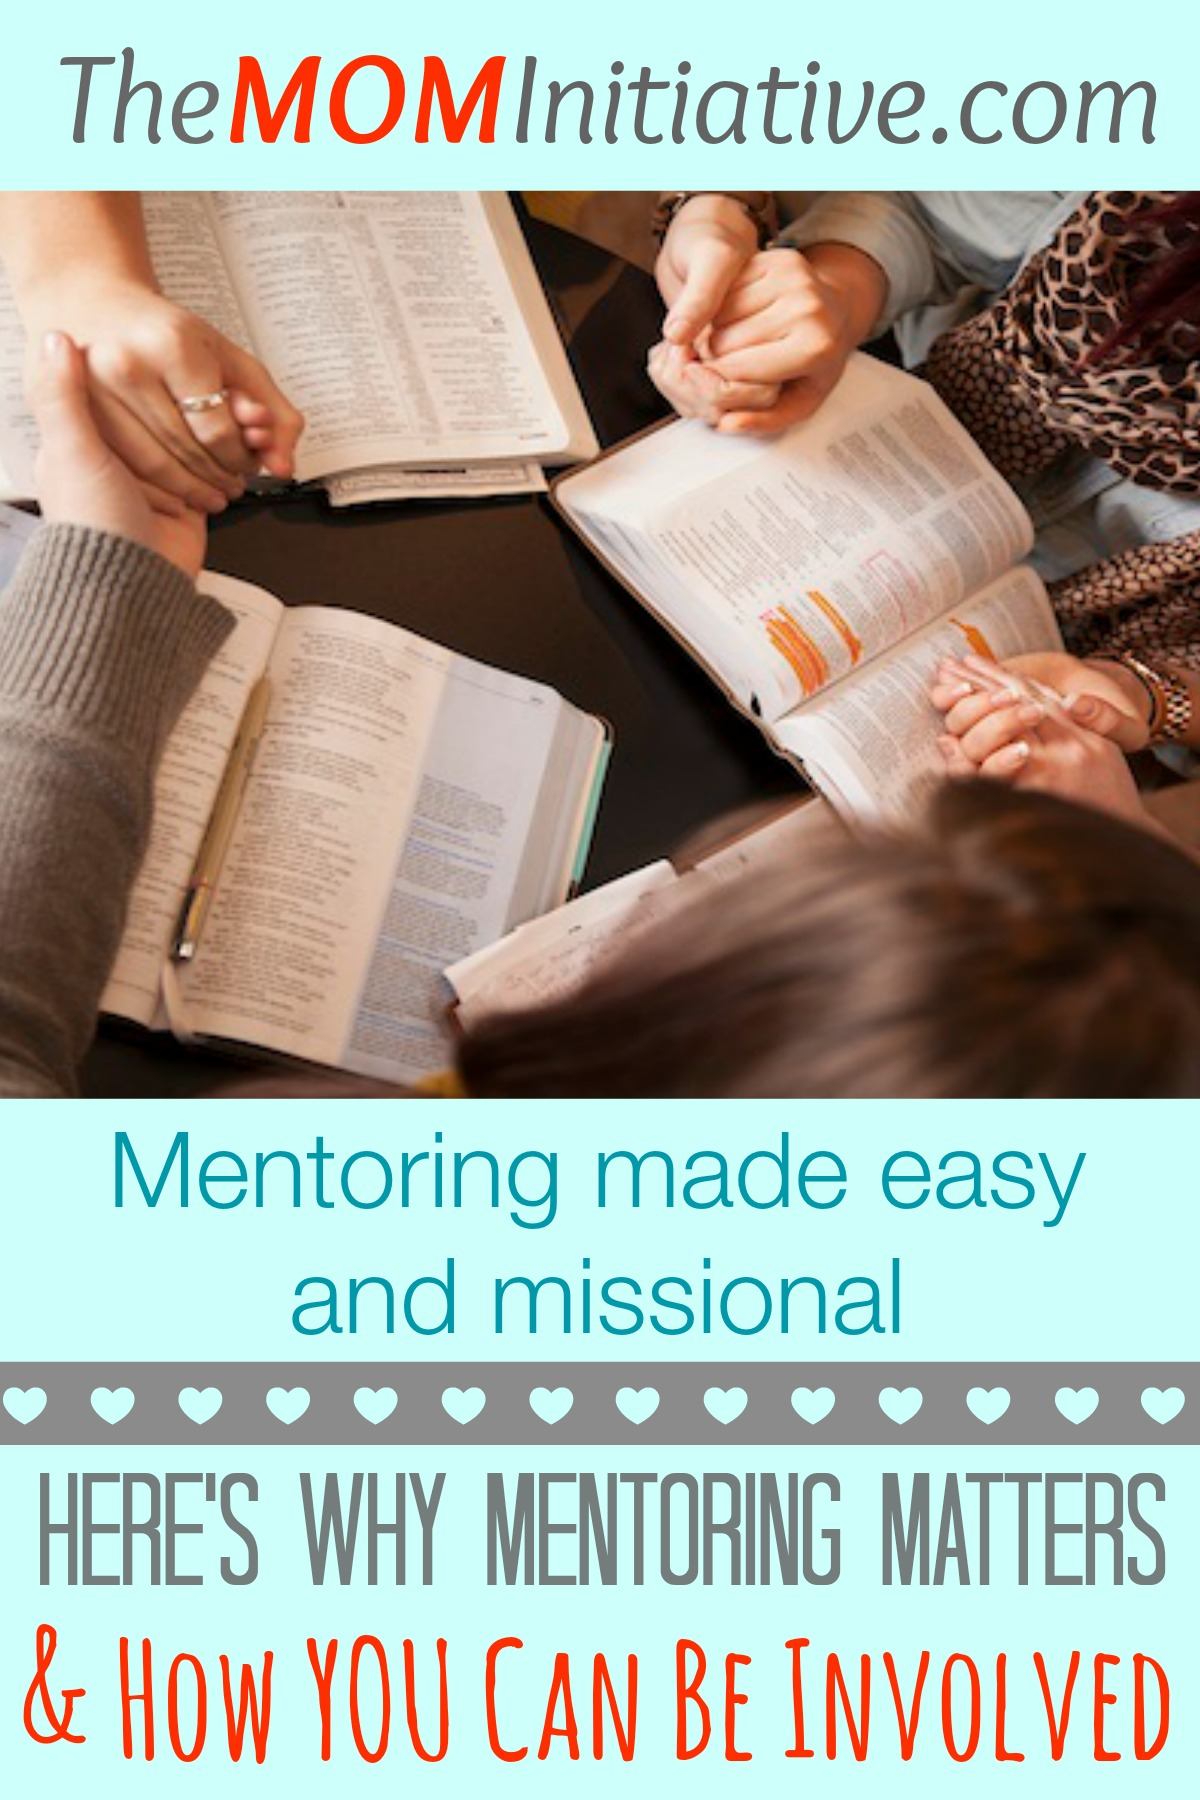 The Chronicle of Evidence-Based Mentoring | How Does ...